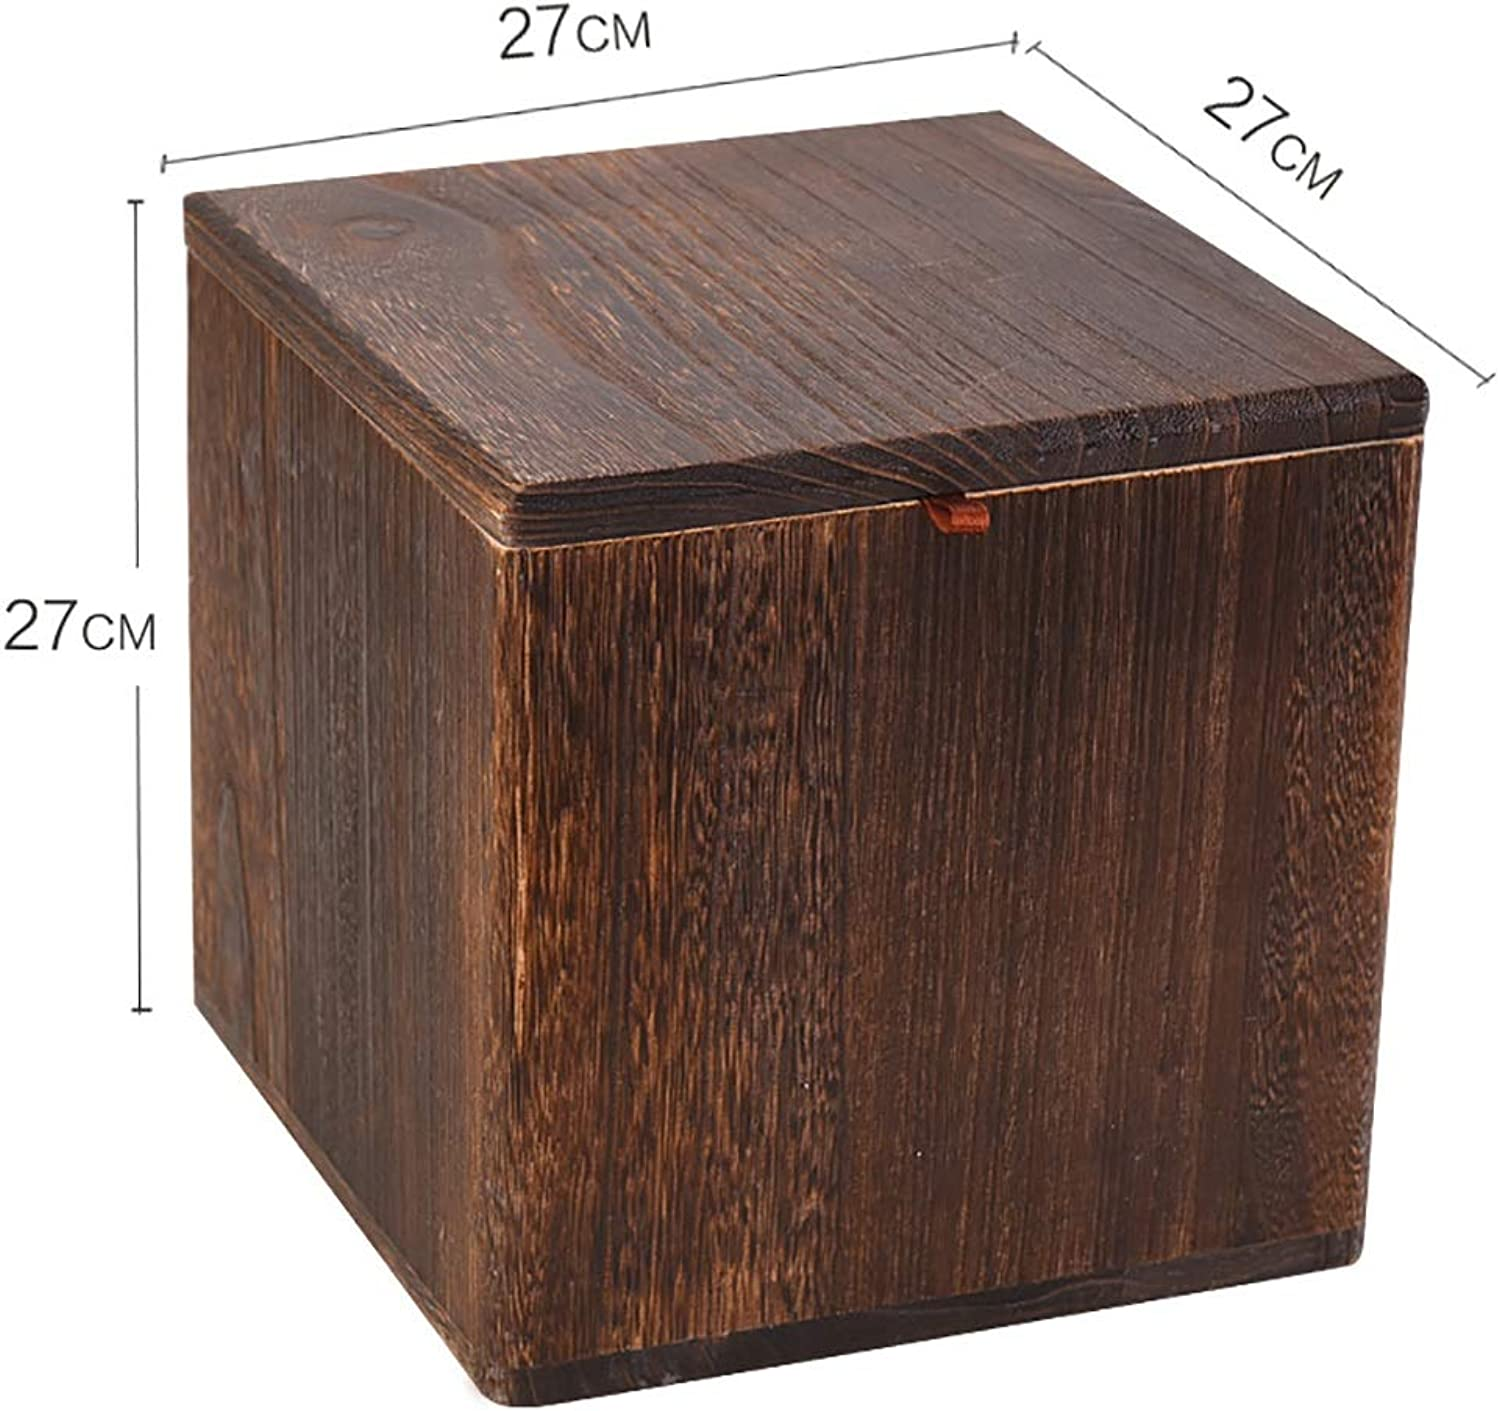 Stool Wooden Bench Living Room Fashion Creative shoes Bench Storage Tea Table Stool Square Stool Low Stool 27  27  27cm (color   B)